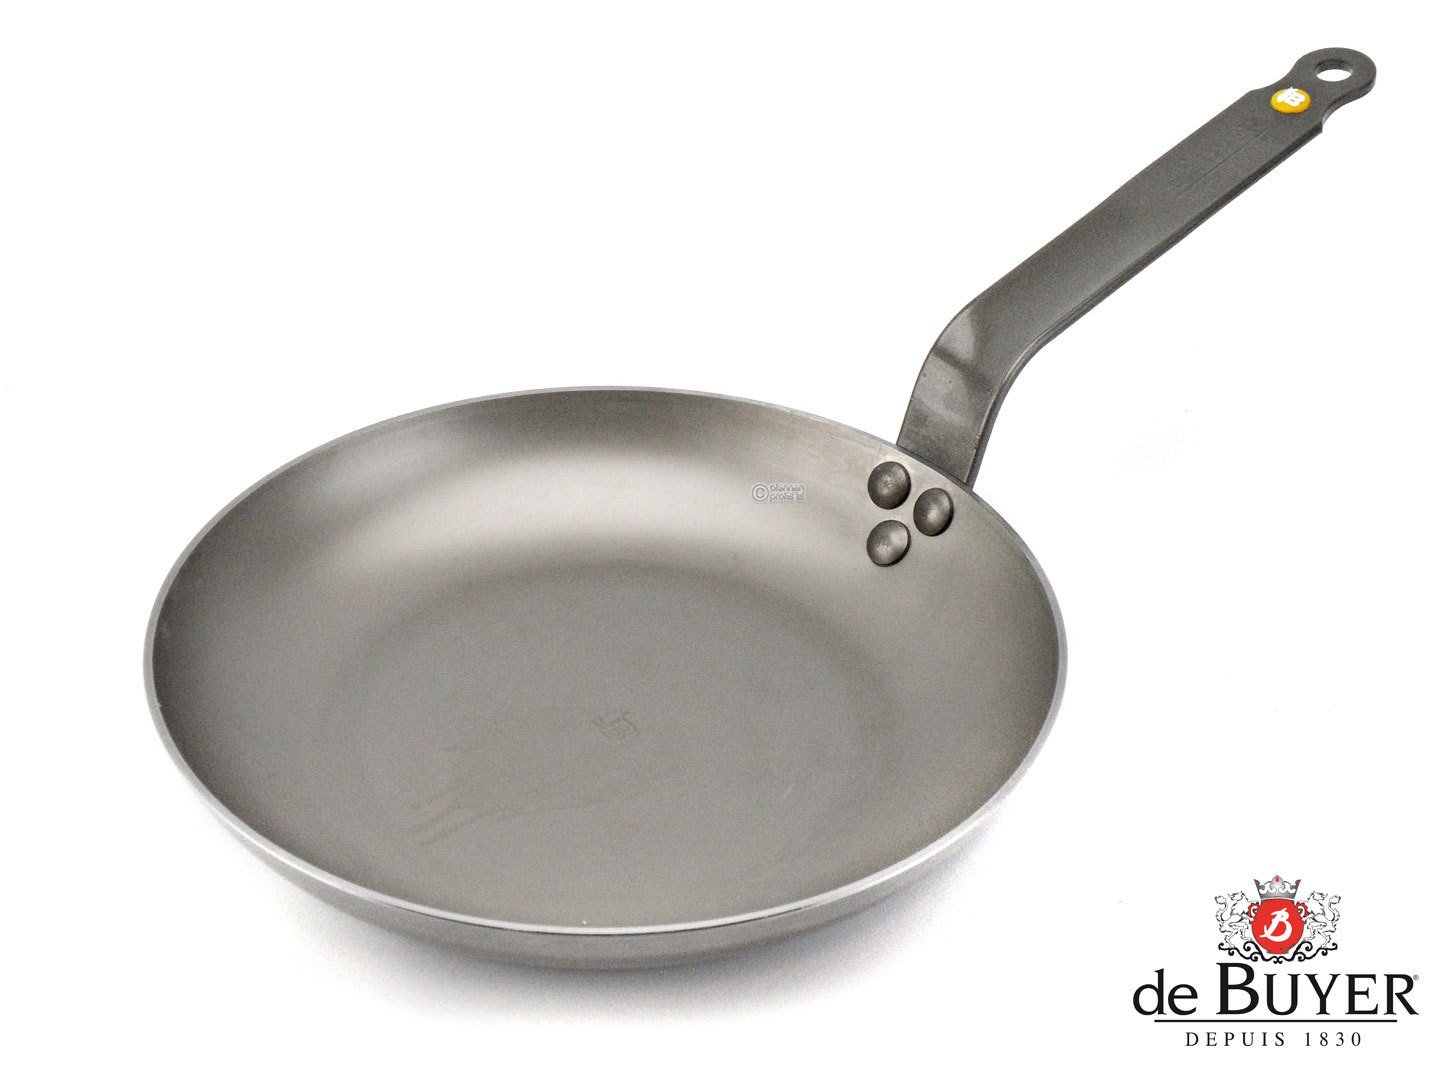 DE BUYER omelette pan MINERAL B ELEMENT 24 cm iron pan